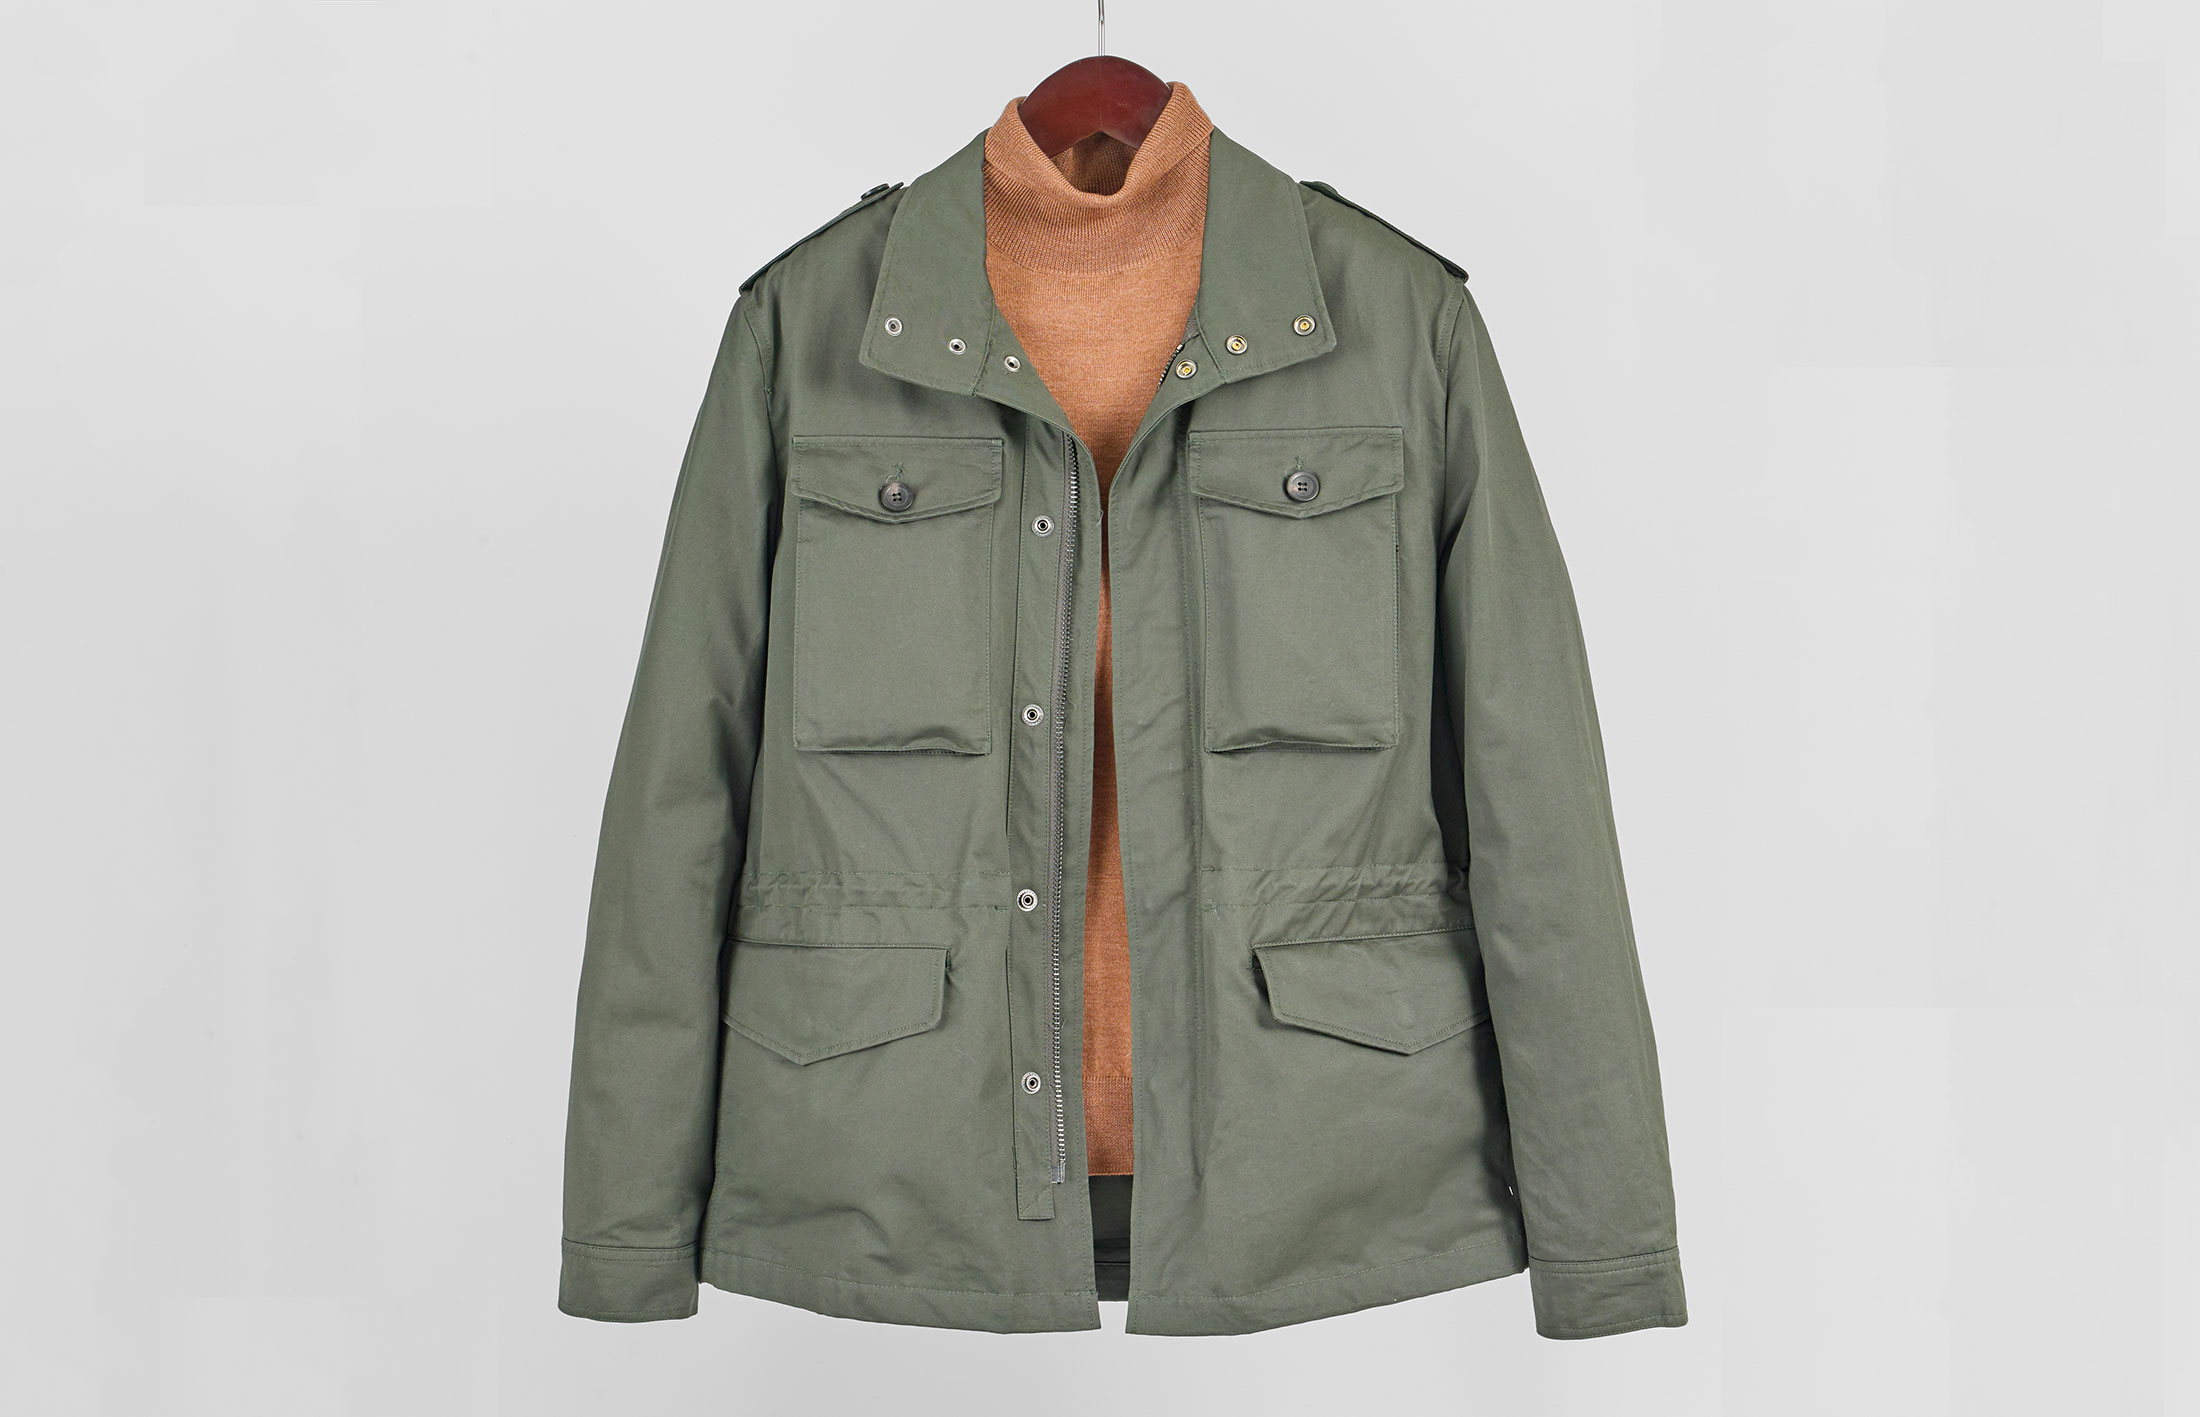 What is a field jacket?